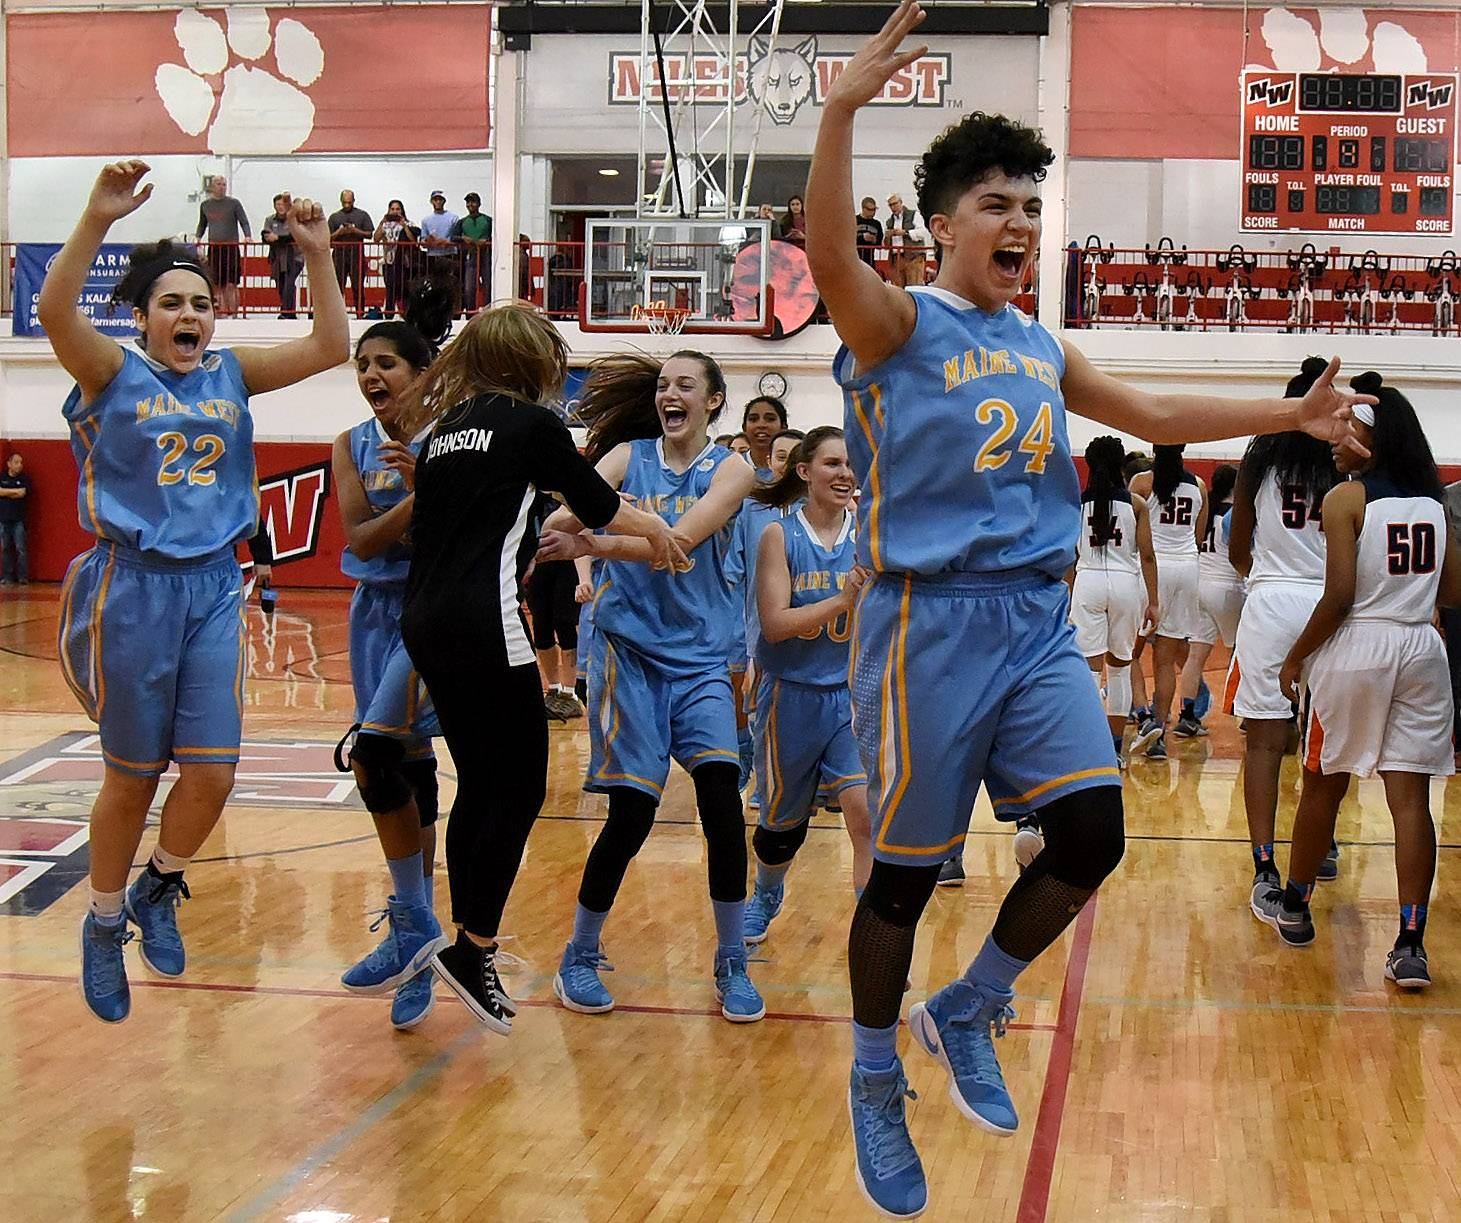 Maine West's Alisa Fallon, right and Bianca Mando jump for joy with teammates after defeating Evanston in the Class 4A sectional final at Niles West Thursday night.